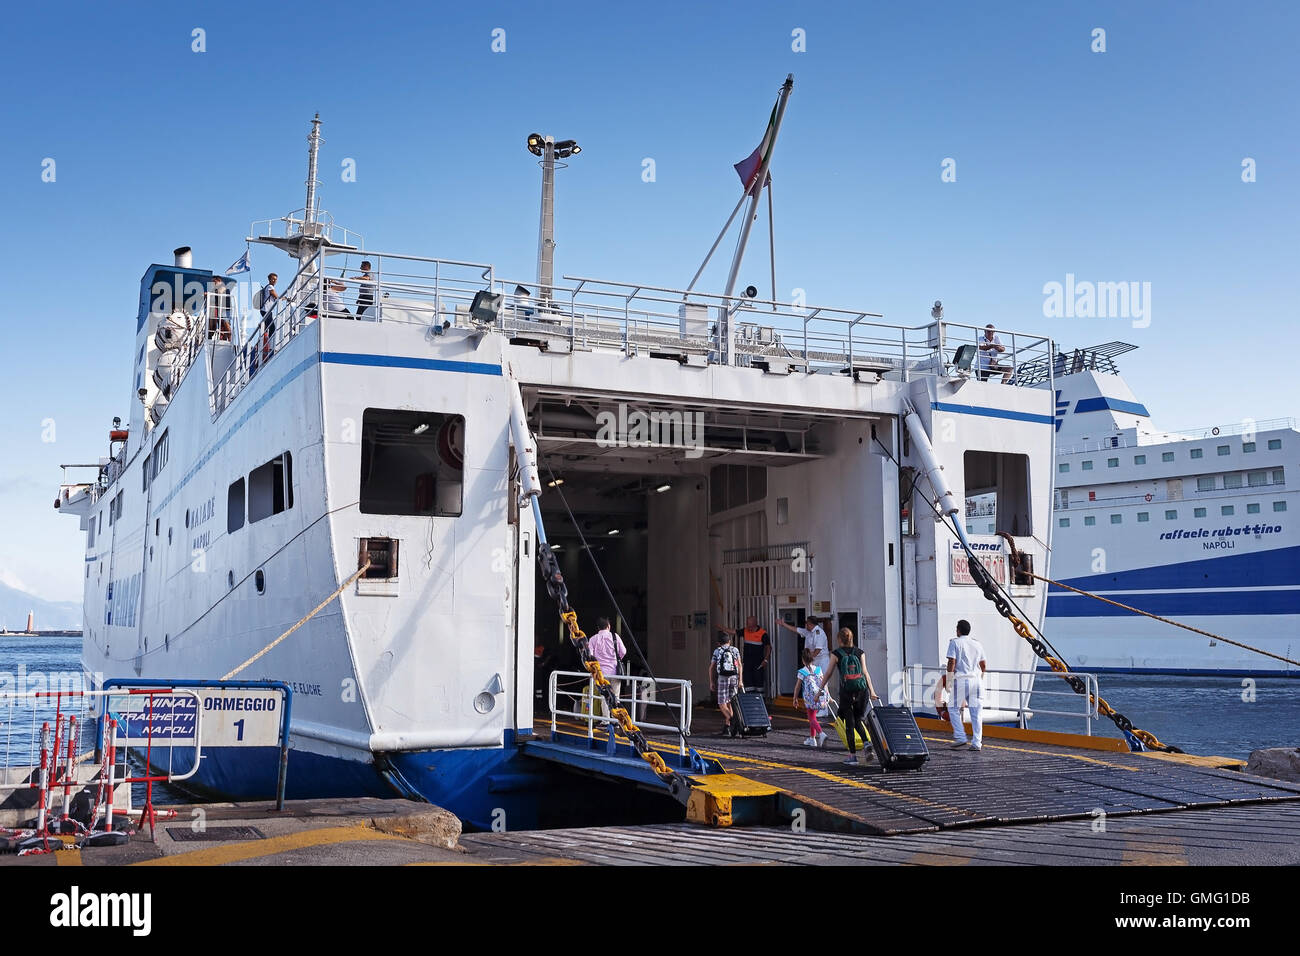 Naples, Italy - August 10, 2016: At the pier in the port of Naples, some tourists embark on the ferry to the island - Stock Image